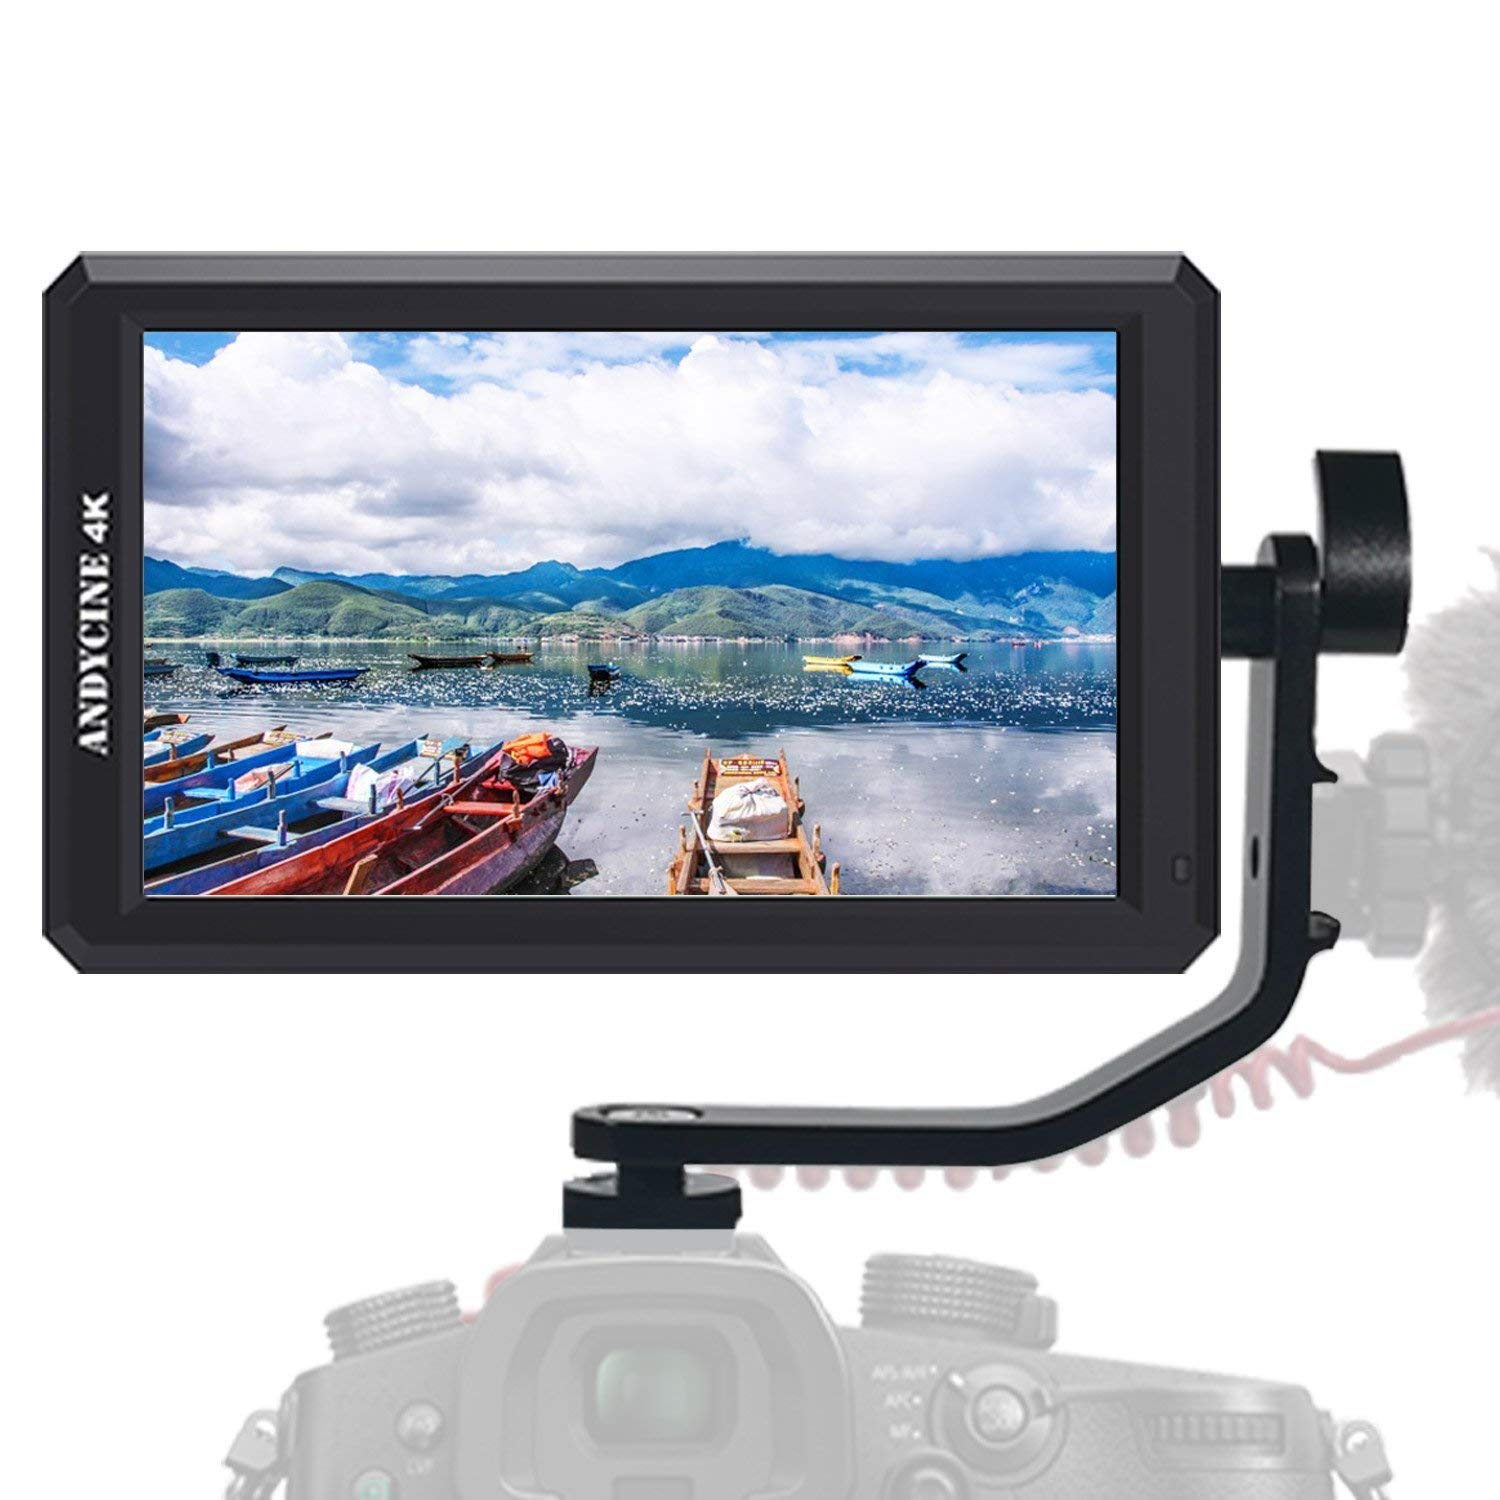 ANDYCINE A6 5.7Inch 1920x1080 IPS DSLR HDMI Field Video Monitor with DC 8V Power Output Support 4K HDMI Signal for Sony A6 A7 Series GH4 GH5, Zhiyun Moza Gimbals Generic